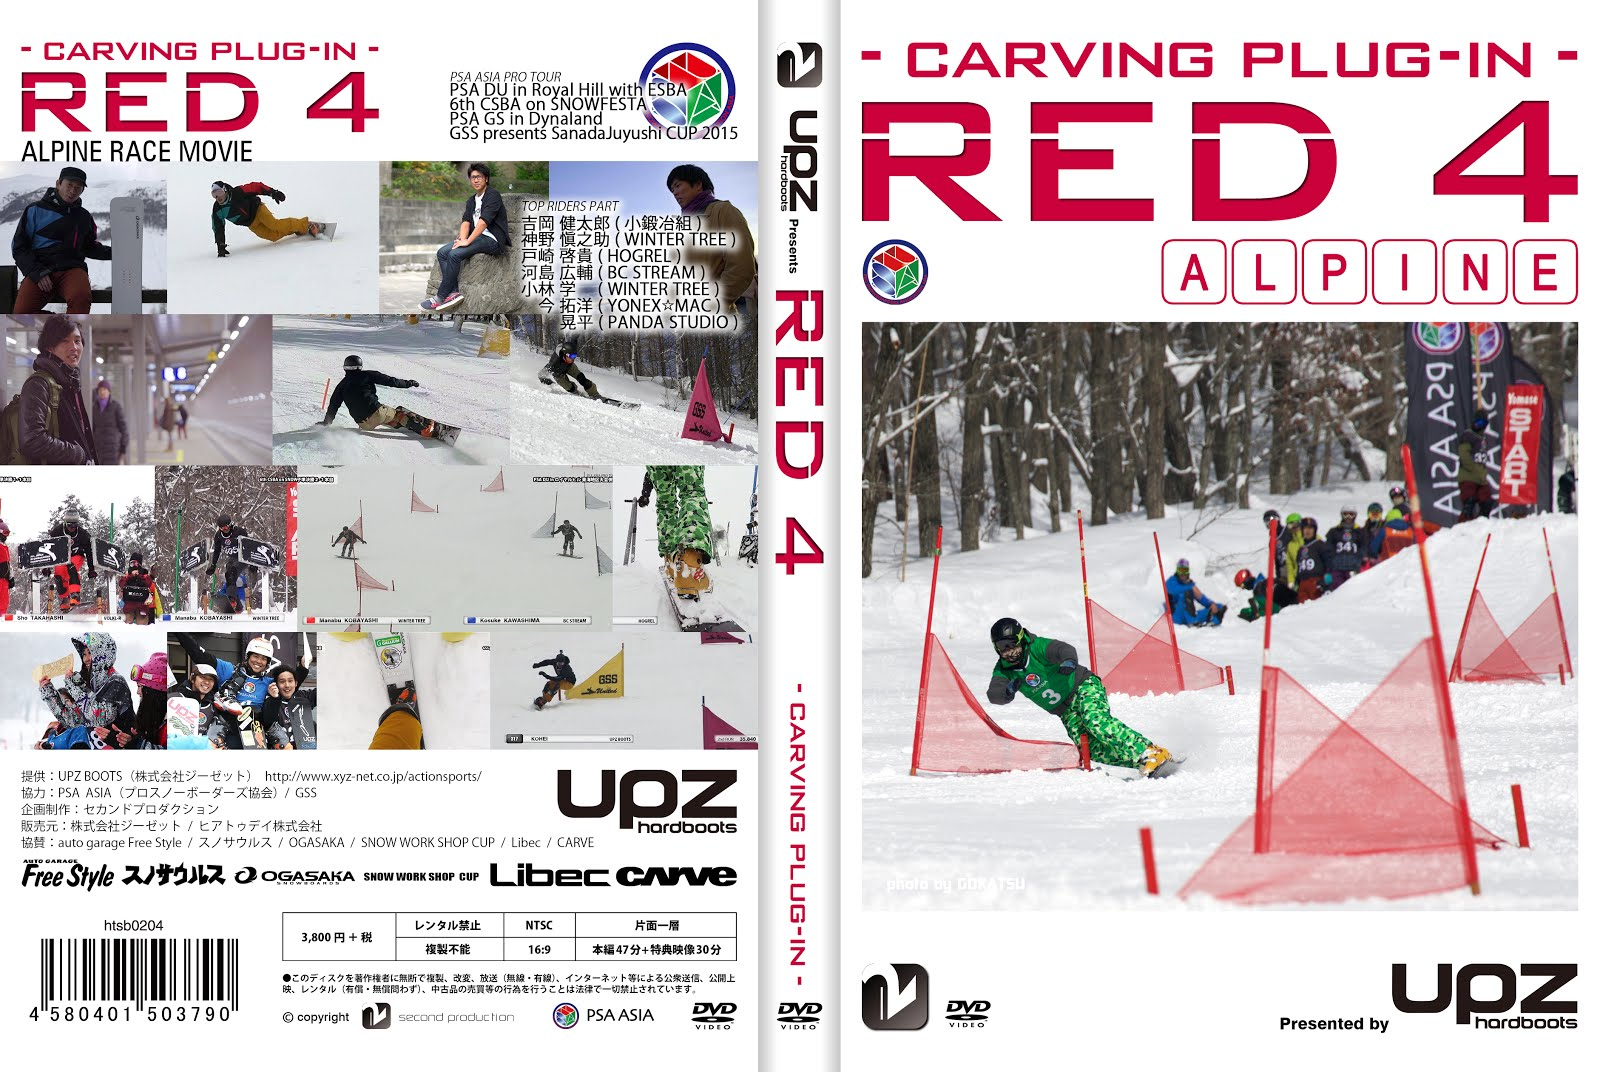 RED 4 - carving plug-in -